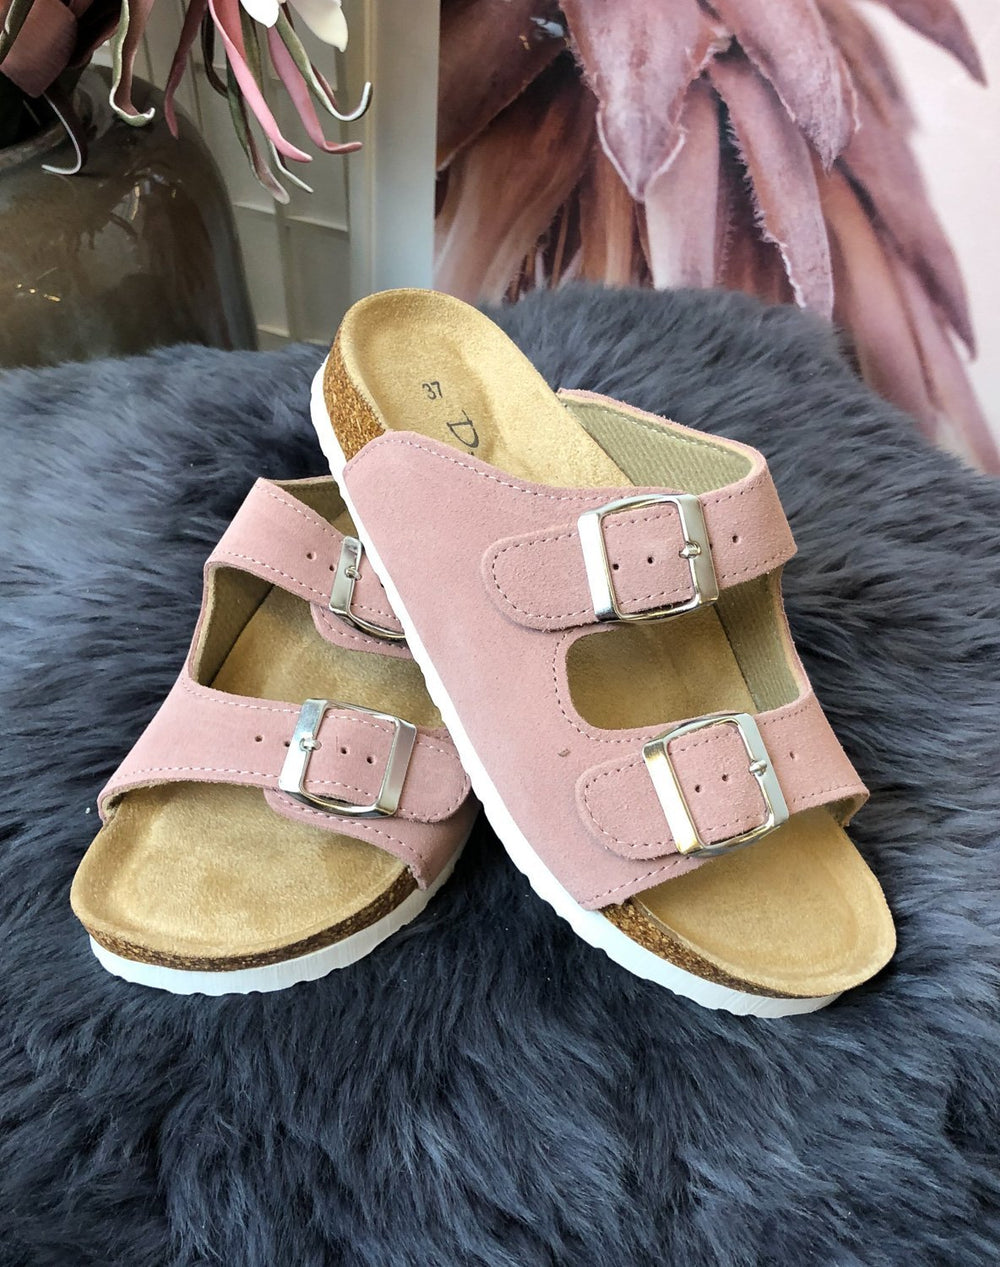 Duffy 8619336 slip in sandal light pink - Online-Mode